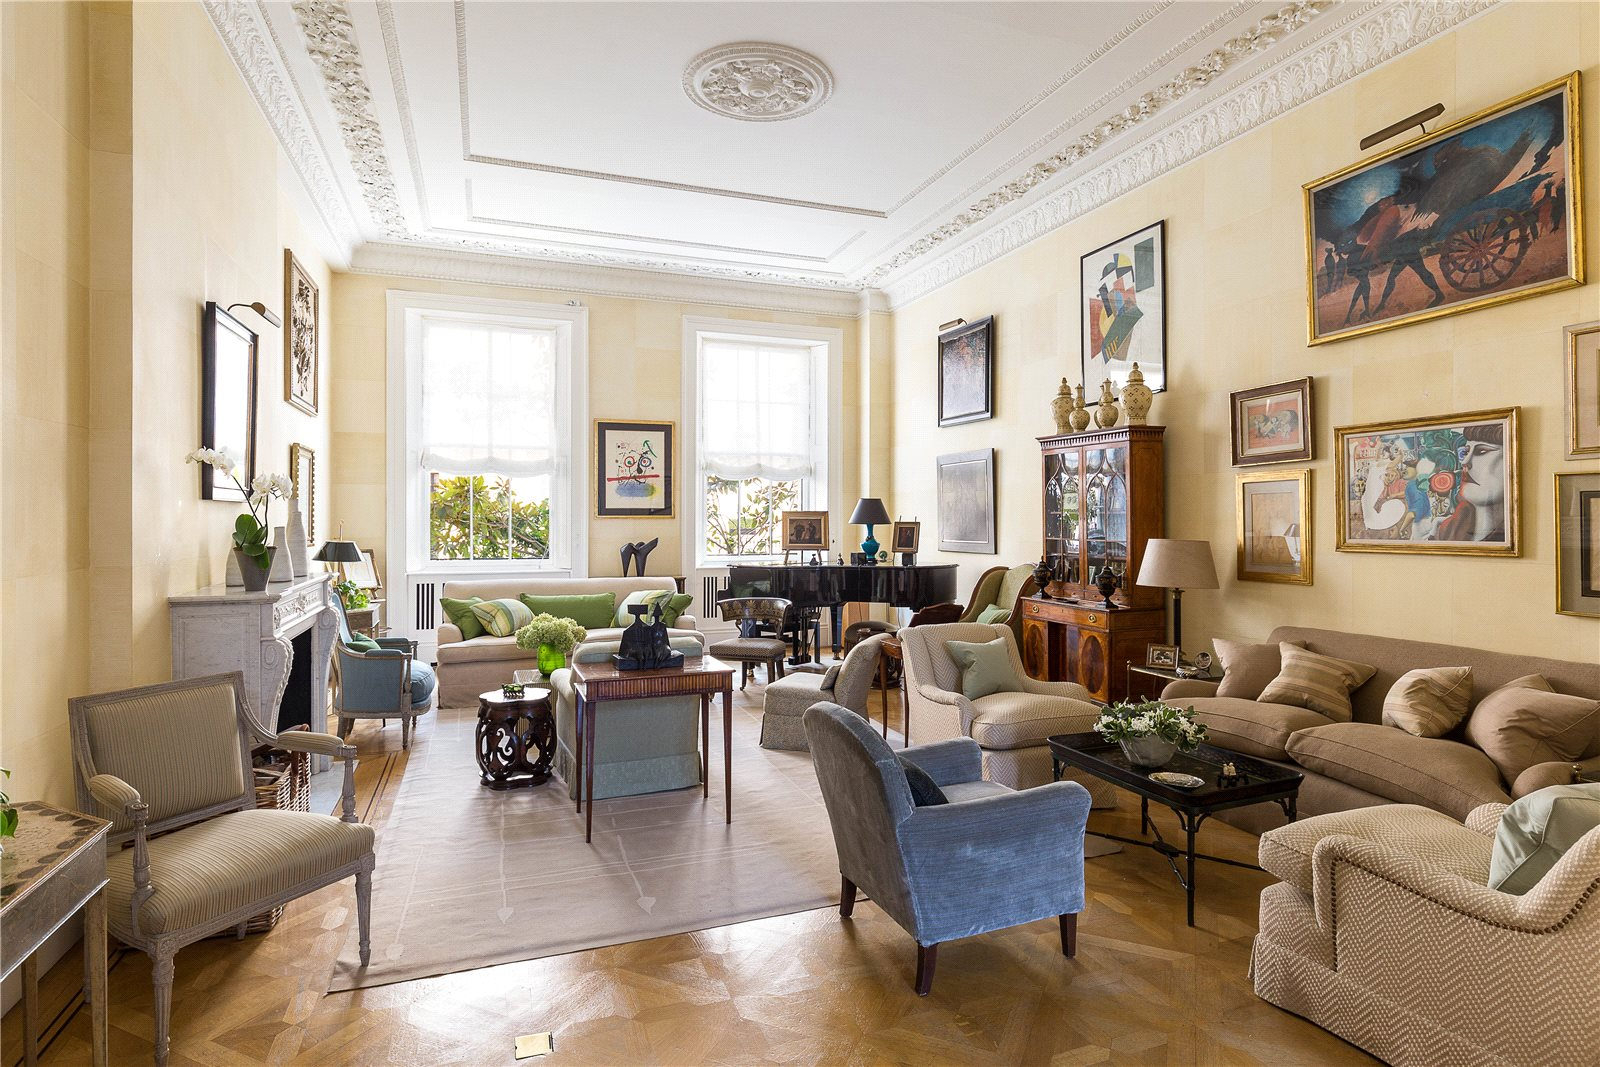 Apartments / Residences for Sale at Eaton Place, London, SW1X London, England